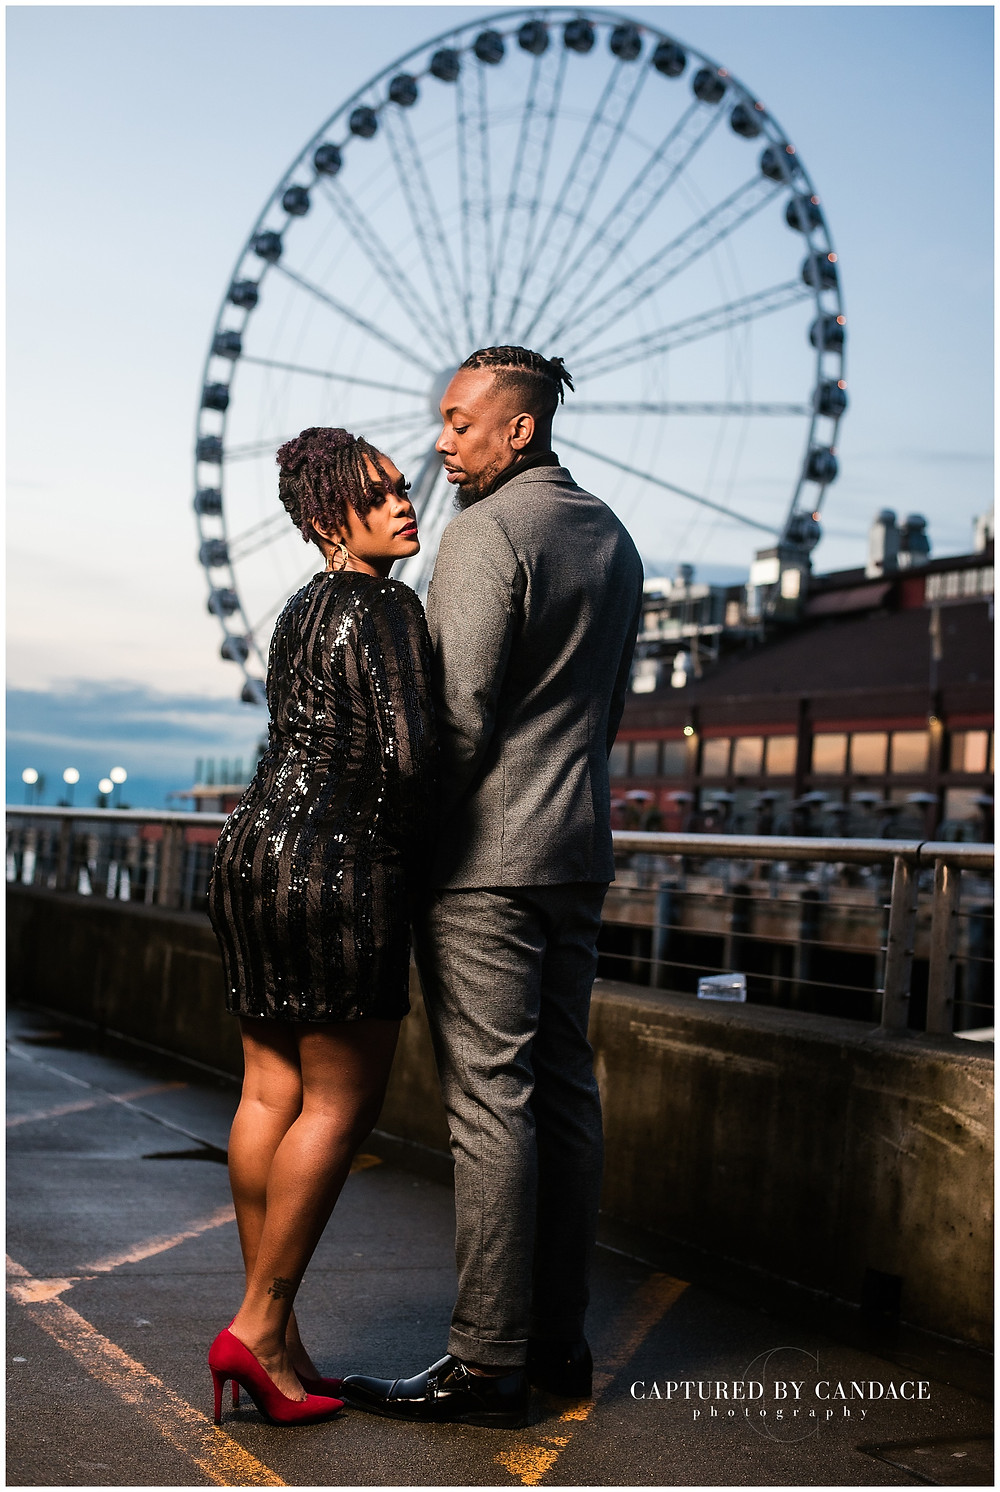 Seattle big wheel engagement photos, Seattle big wheel engagement, seattle waterfront engagement photos, Seattle engagement photos